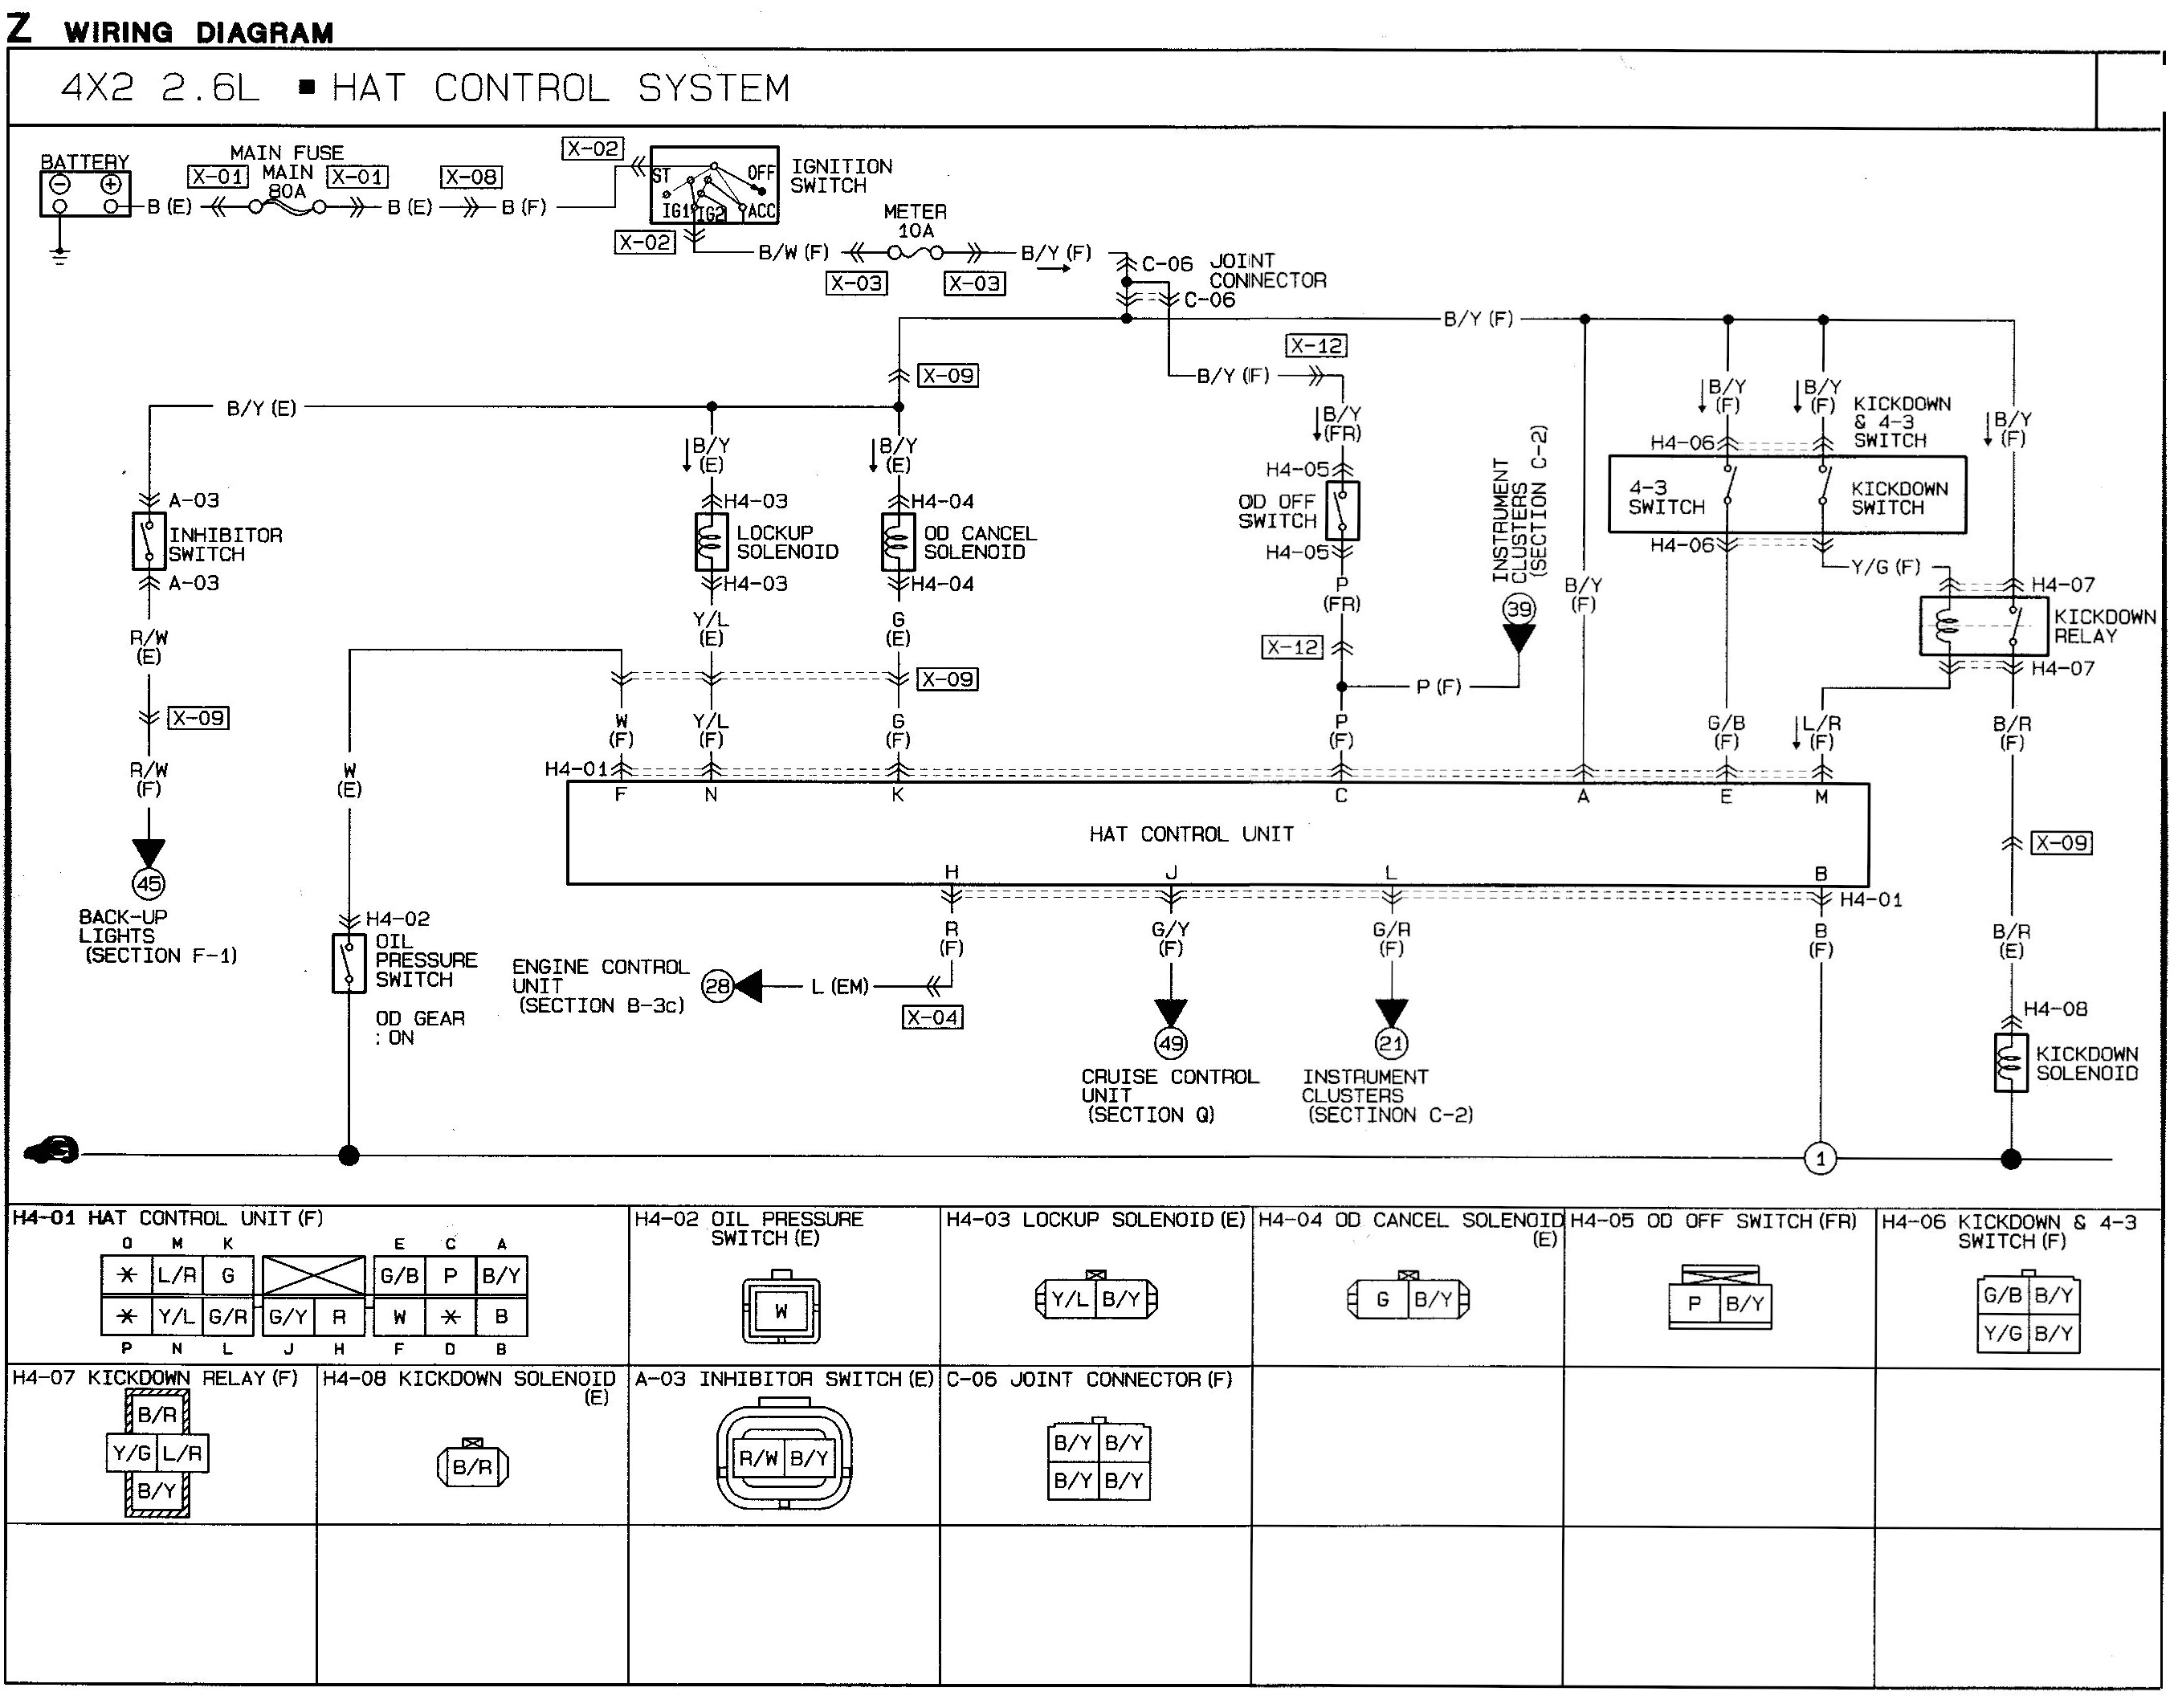 Automatic Transmission Wiring Diagram 1991 Mazda B2600i Wiring Diagram 4×2 Automatic Transmission